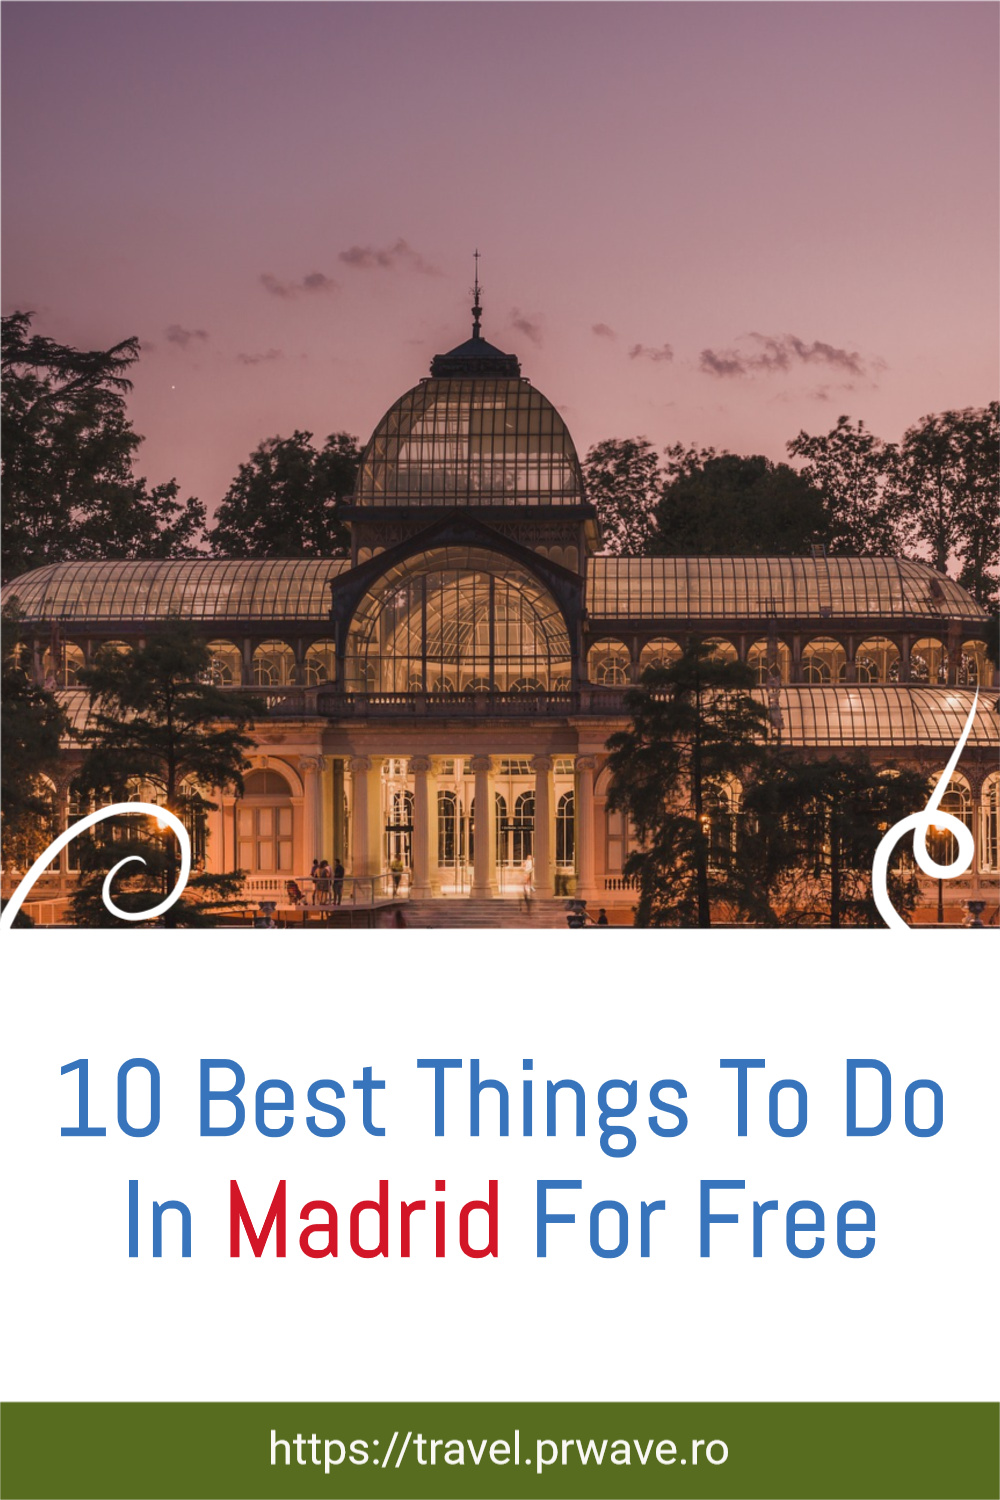 10 Best things to do in Madrid for free. Discover the best attractions in Madrid, Spain to include on your Madrid itinerary. #madrid #travelmomentsintime #madridspain #spaintravel #europetravel #madridthingstodo